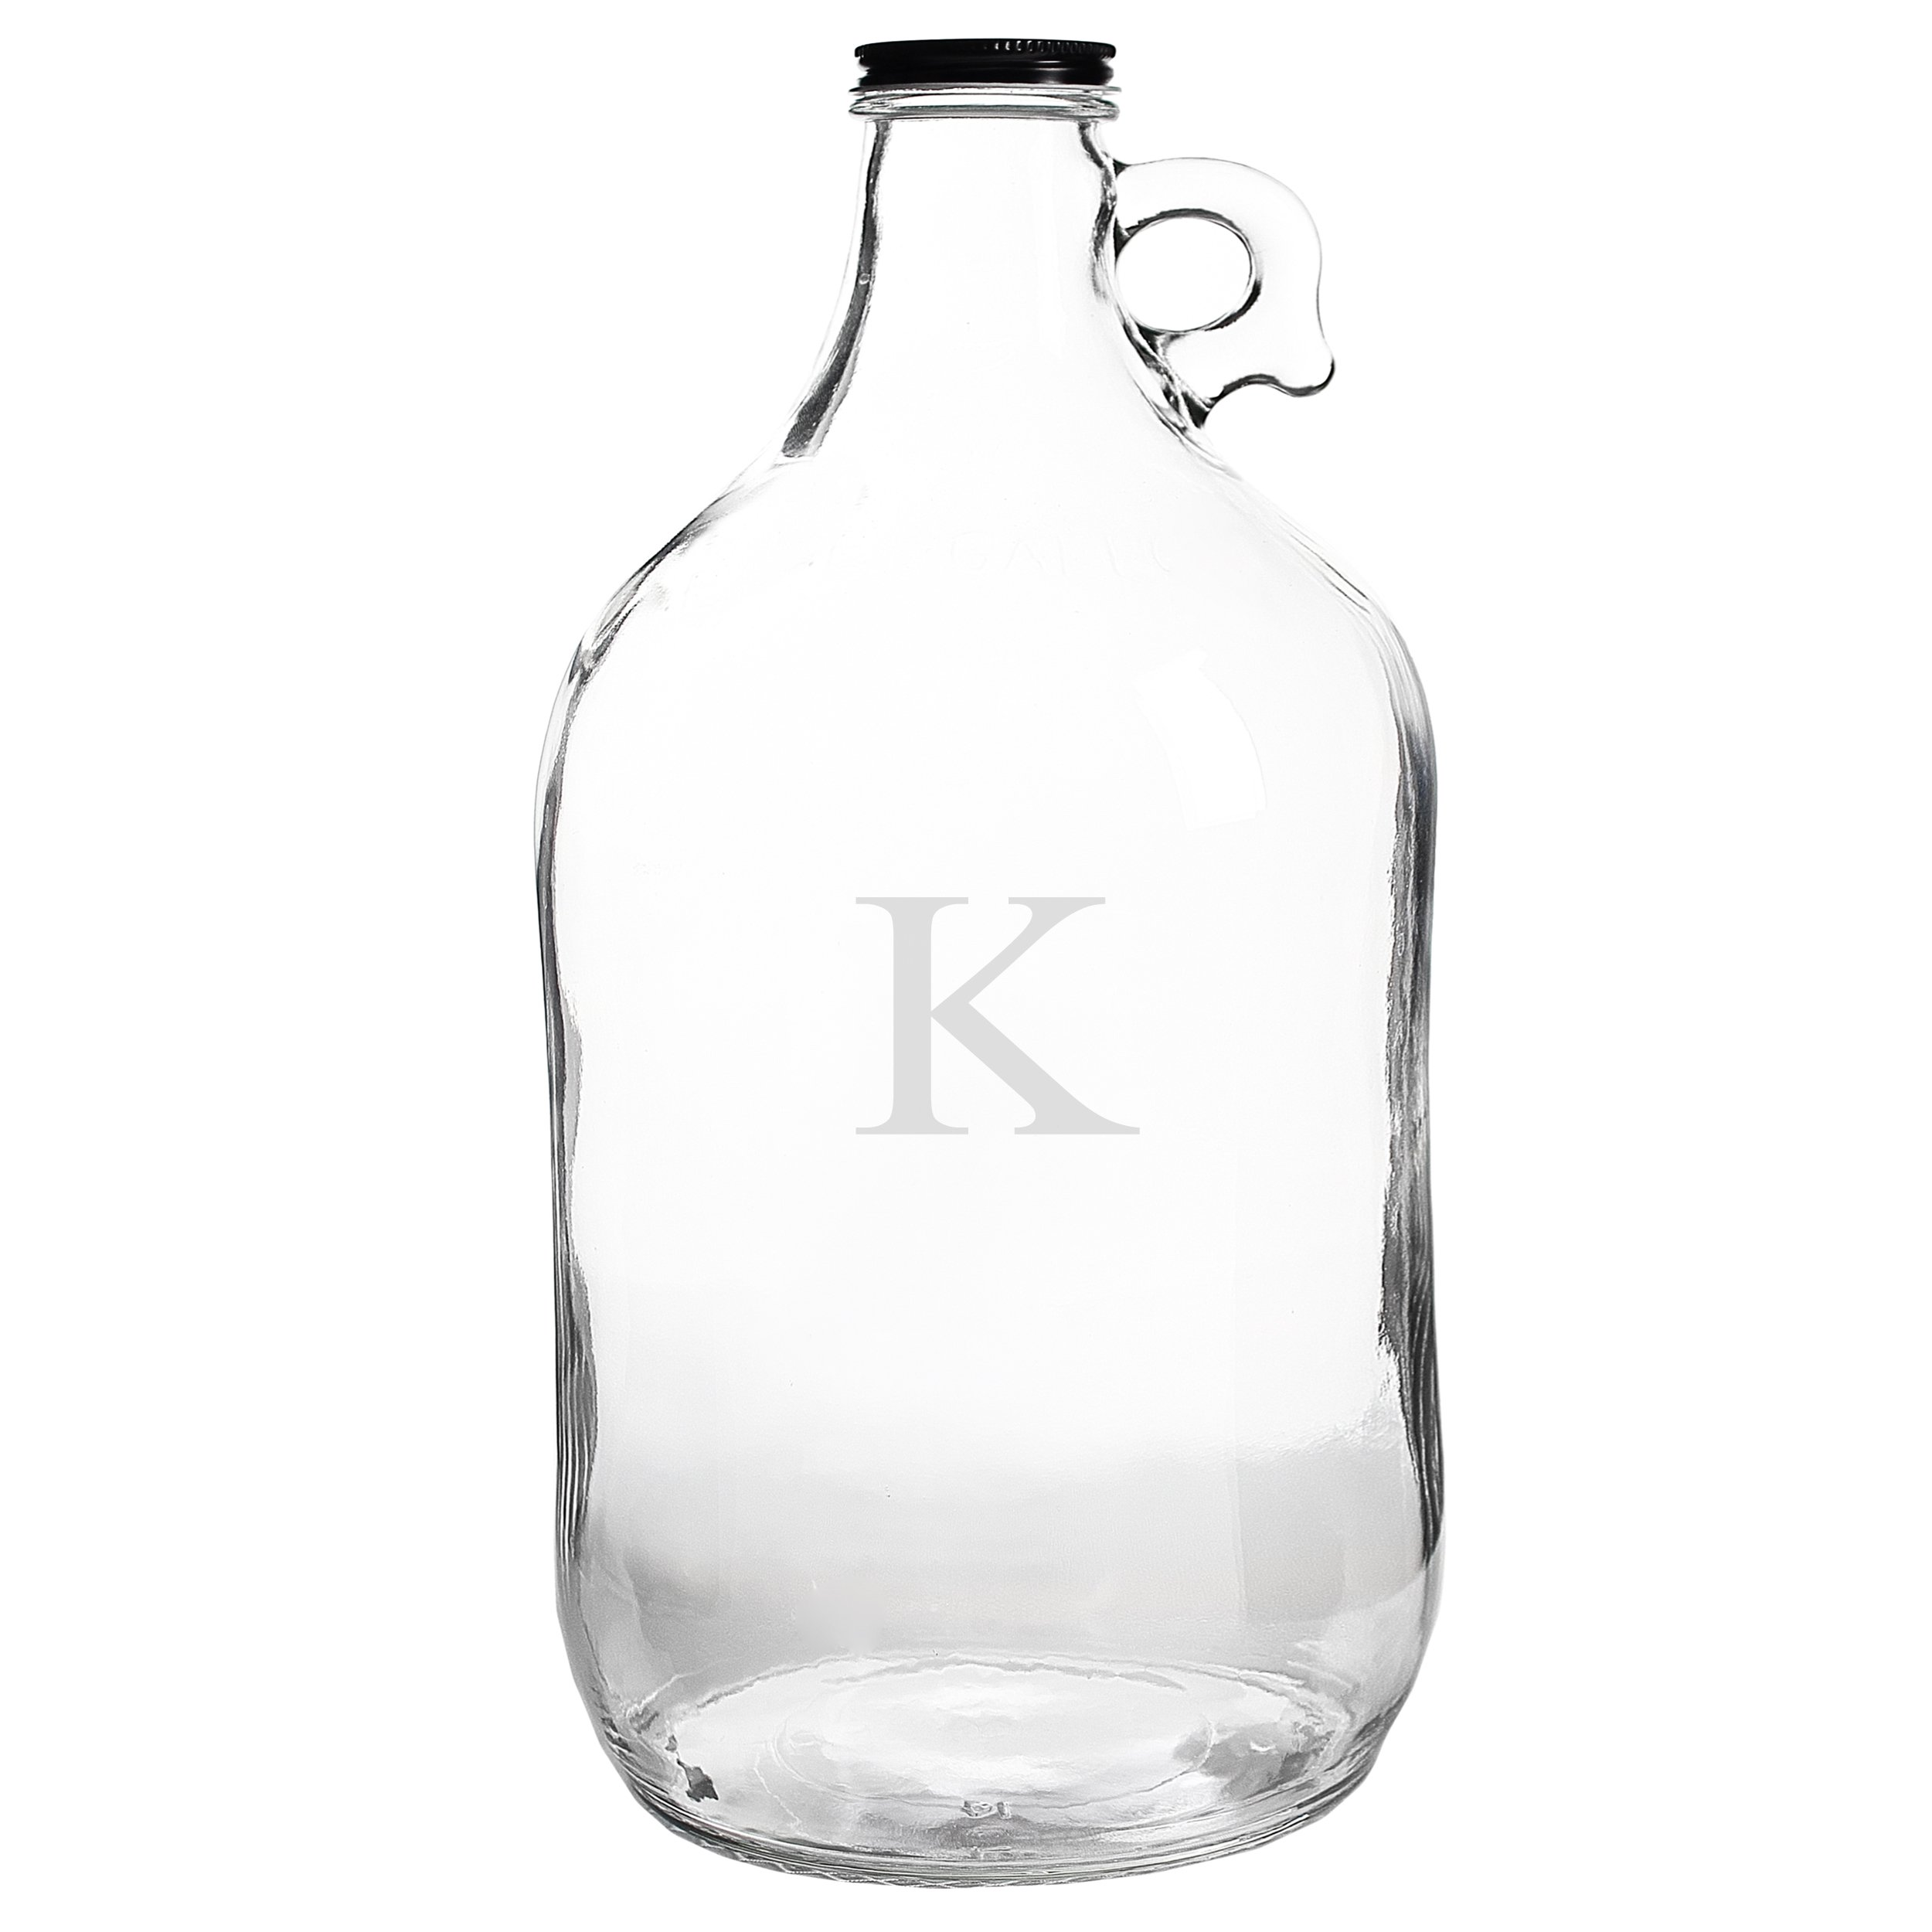 Cathy's Concepts Personalized Craft Beer Growler, Letter K